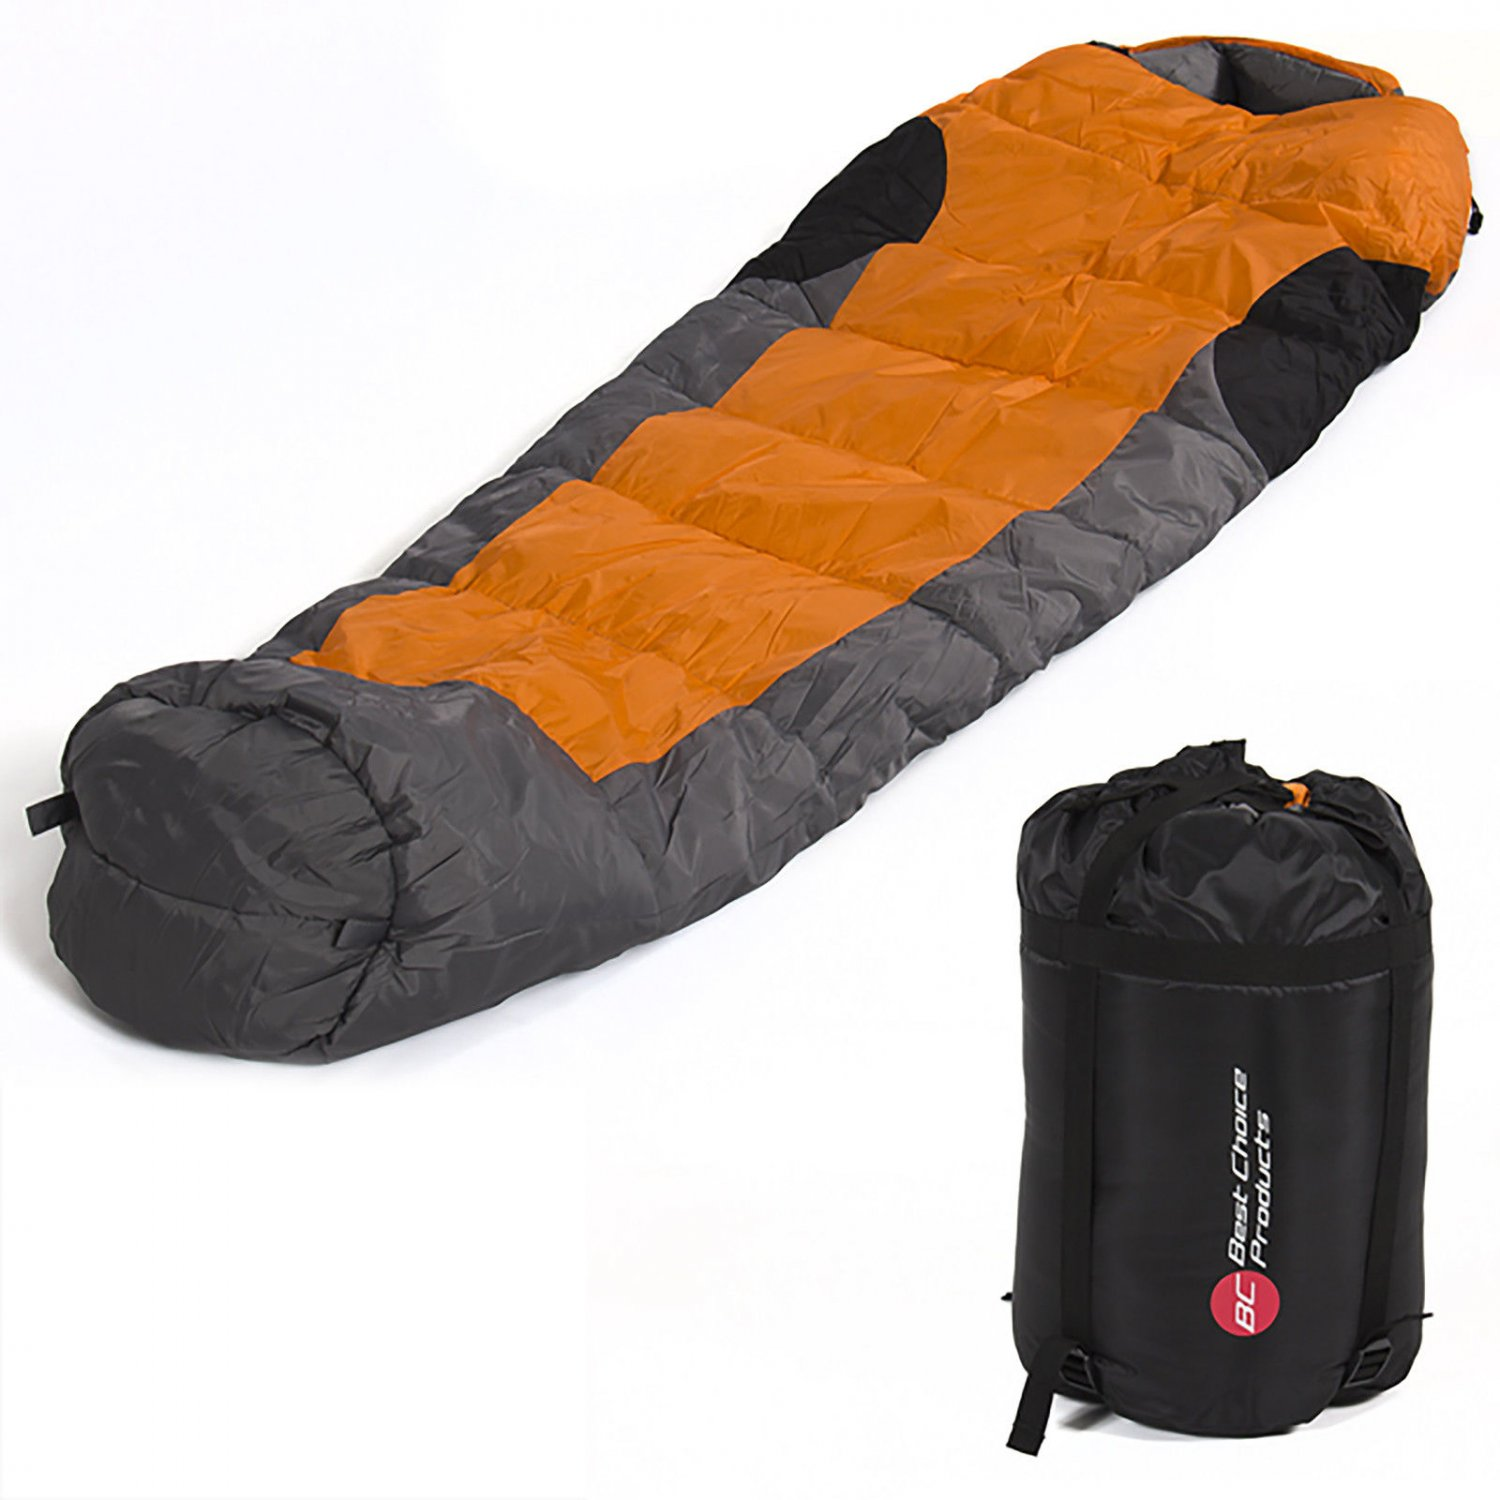 Brand New Mummy Sleeping Bag 5F/-15C Camping Hiking With Carrying Case